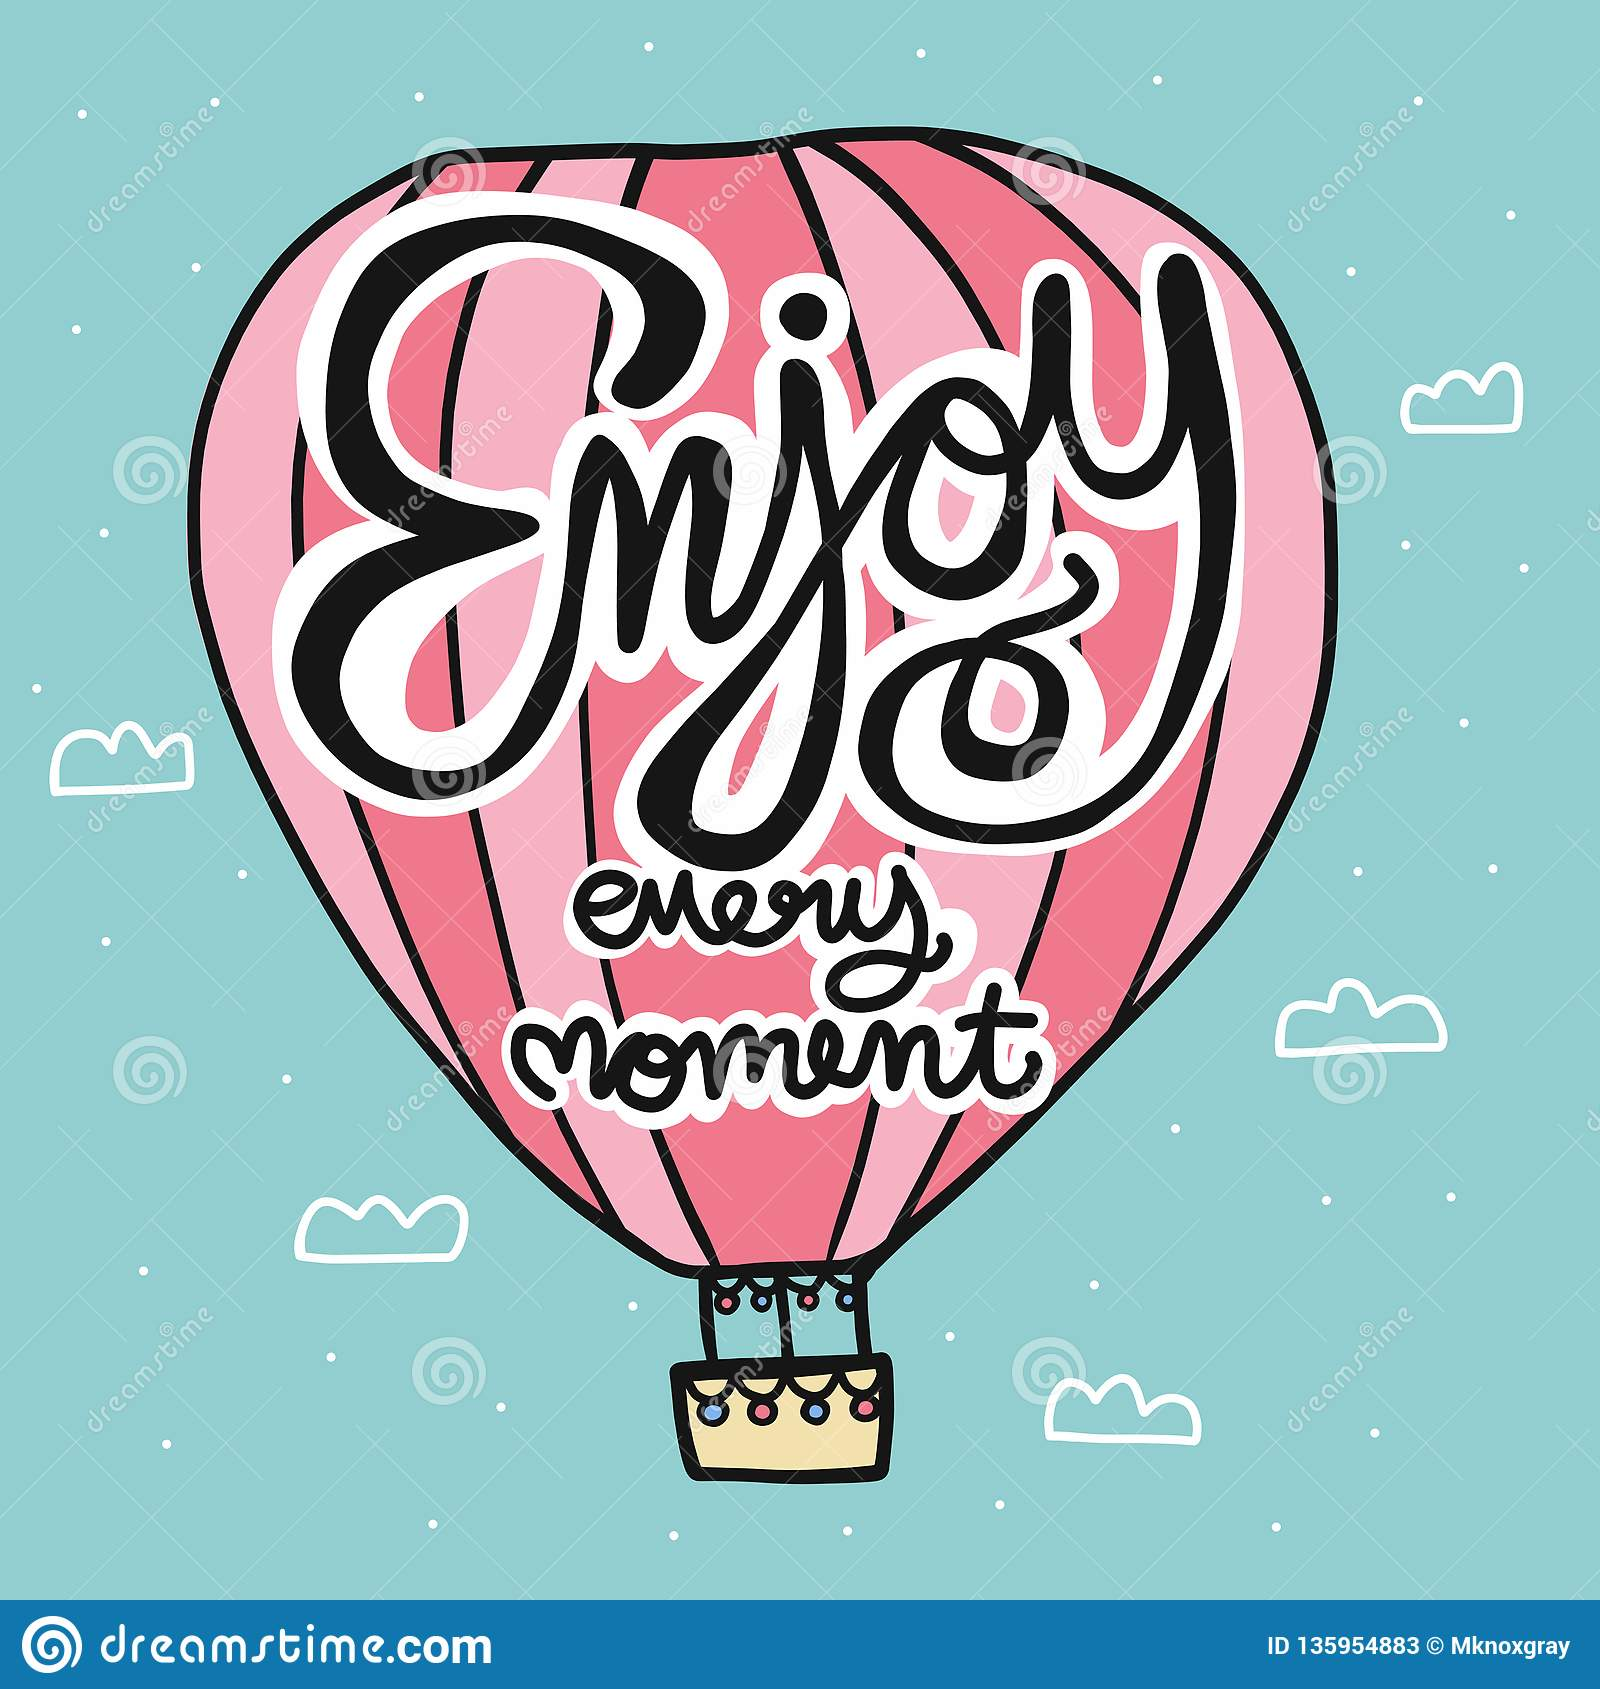 Enjoy every moment lettering word on pink hot air balloon cartoon illustration doodle style